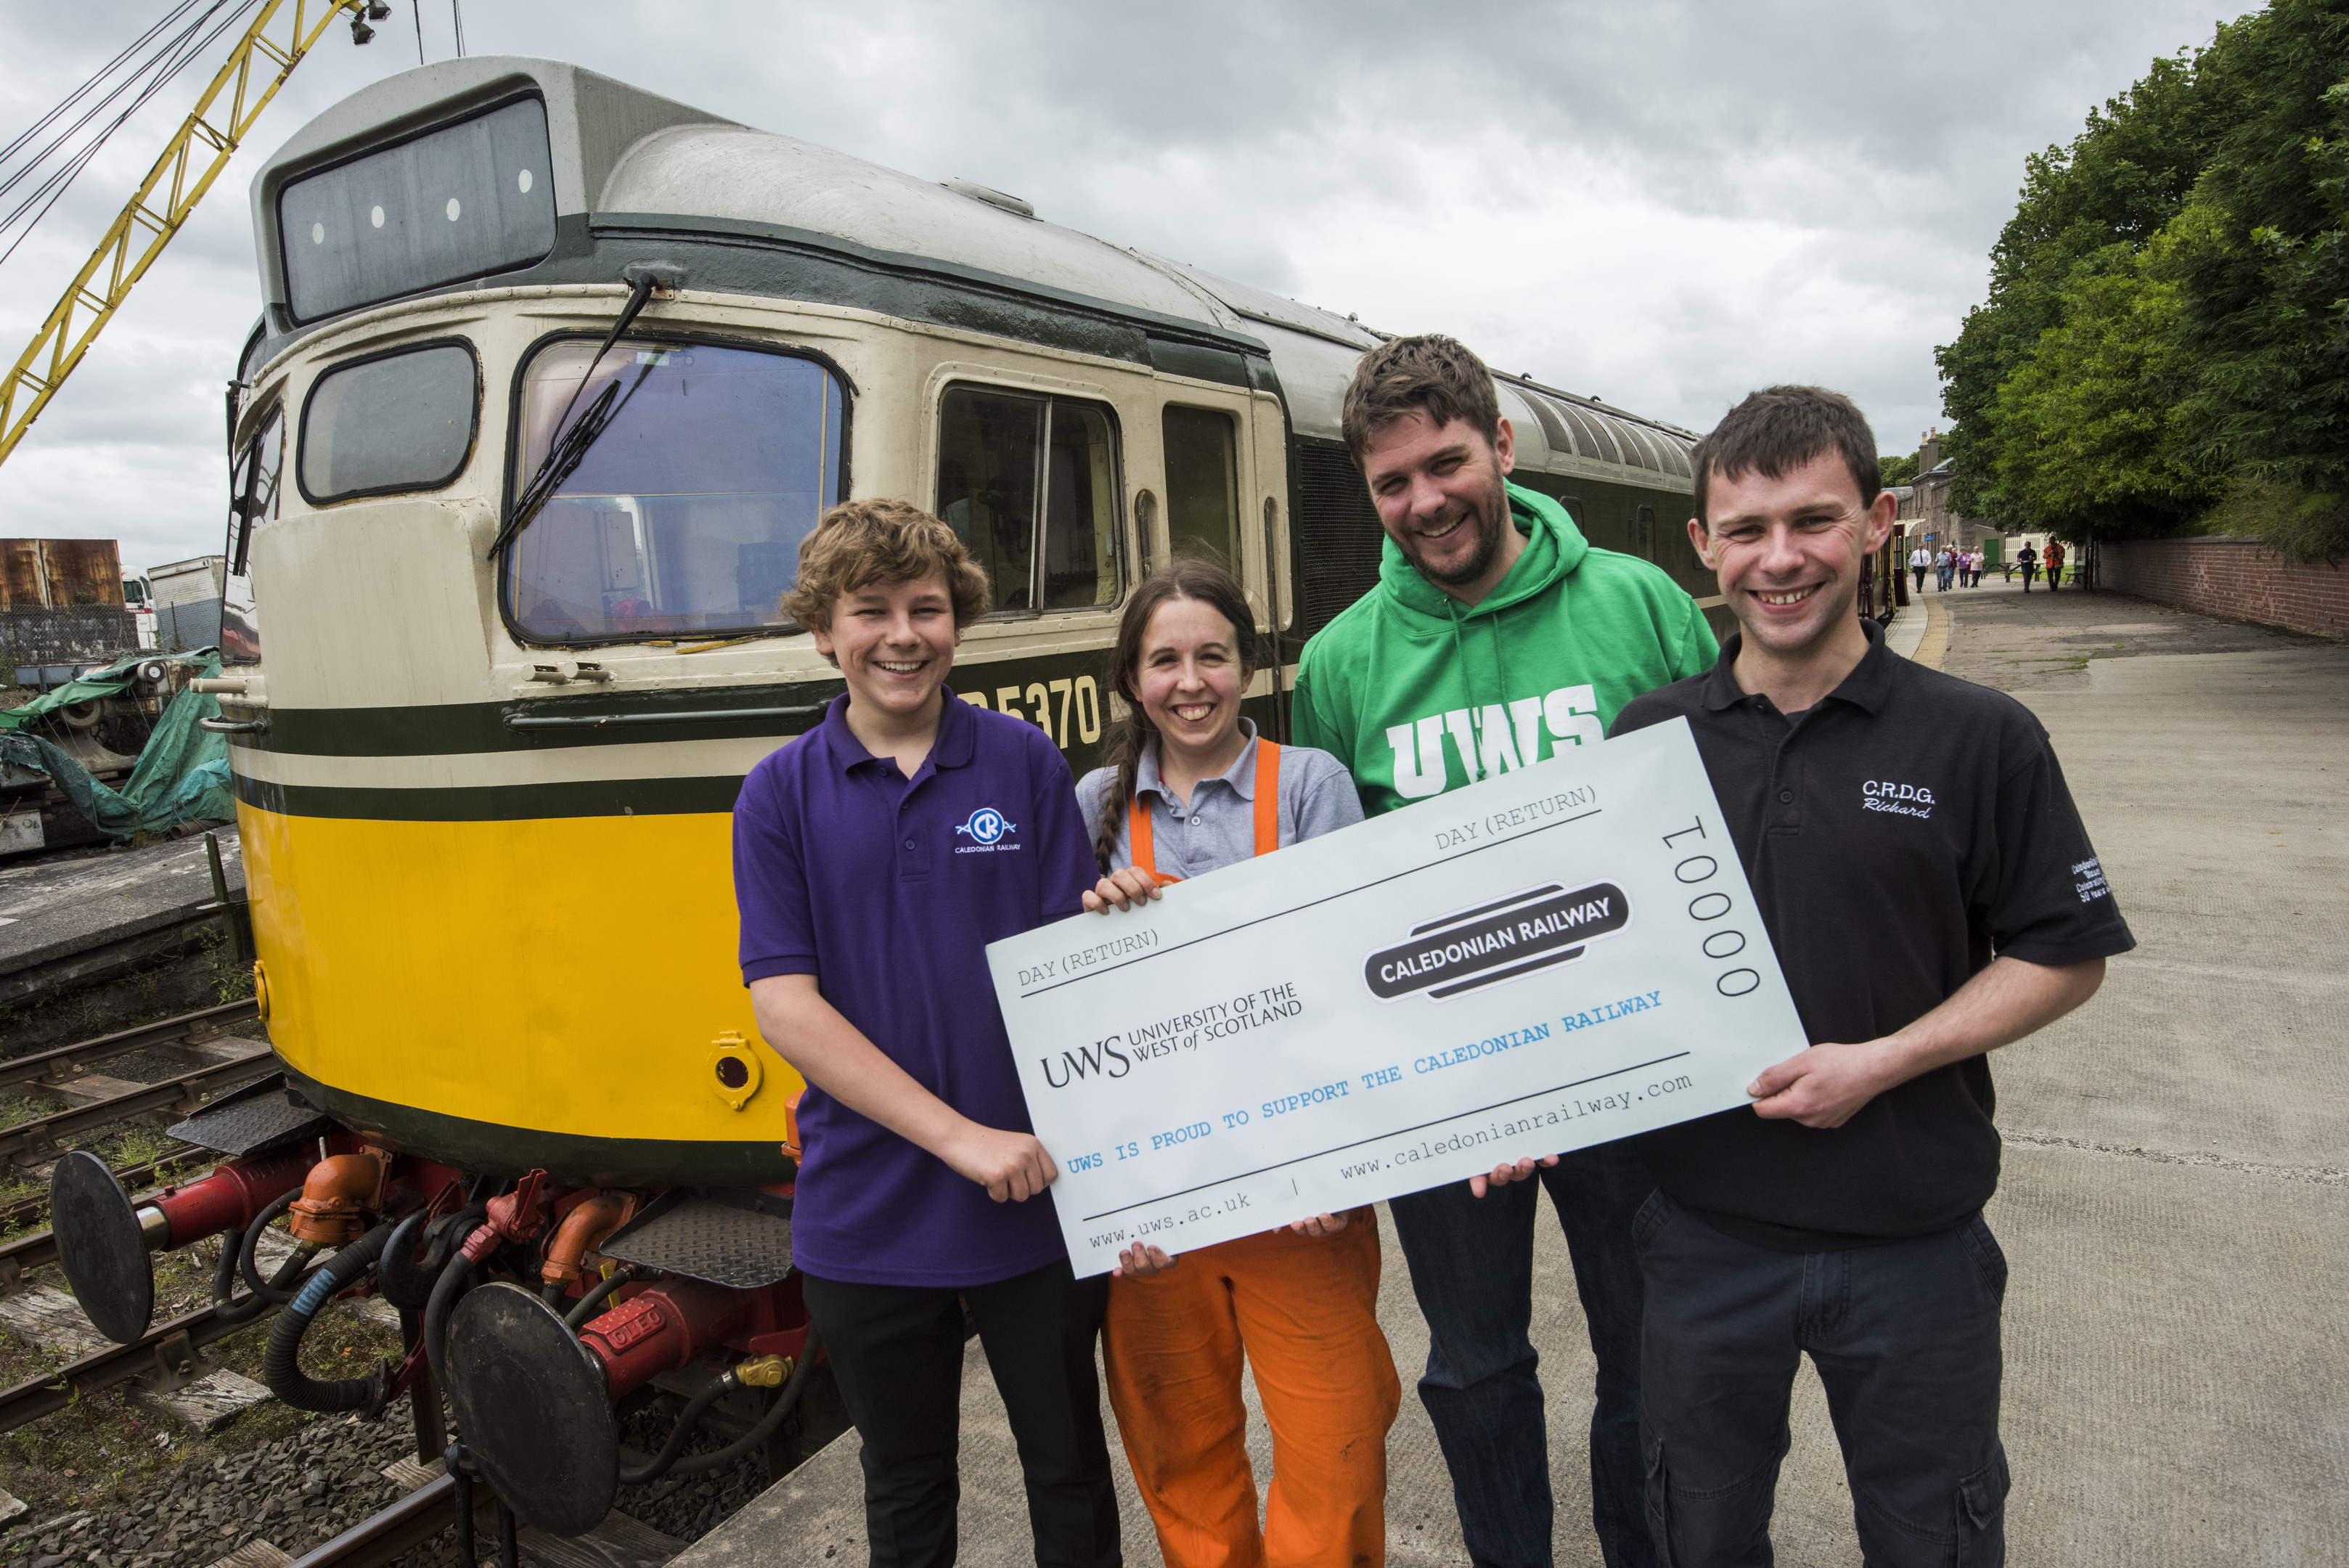 Pic shows (left to right): Caledonian Railway volunteer Ranald Simmons, with University of the West of Scotland researchers Kirsty Soutar and Sandro Carnicelli, and railway volunteer Ged Scott